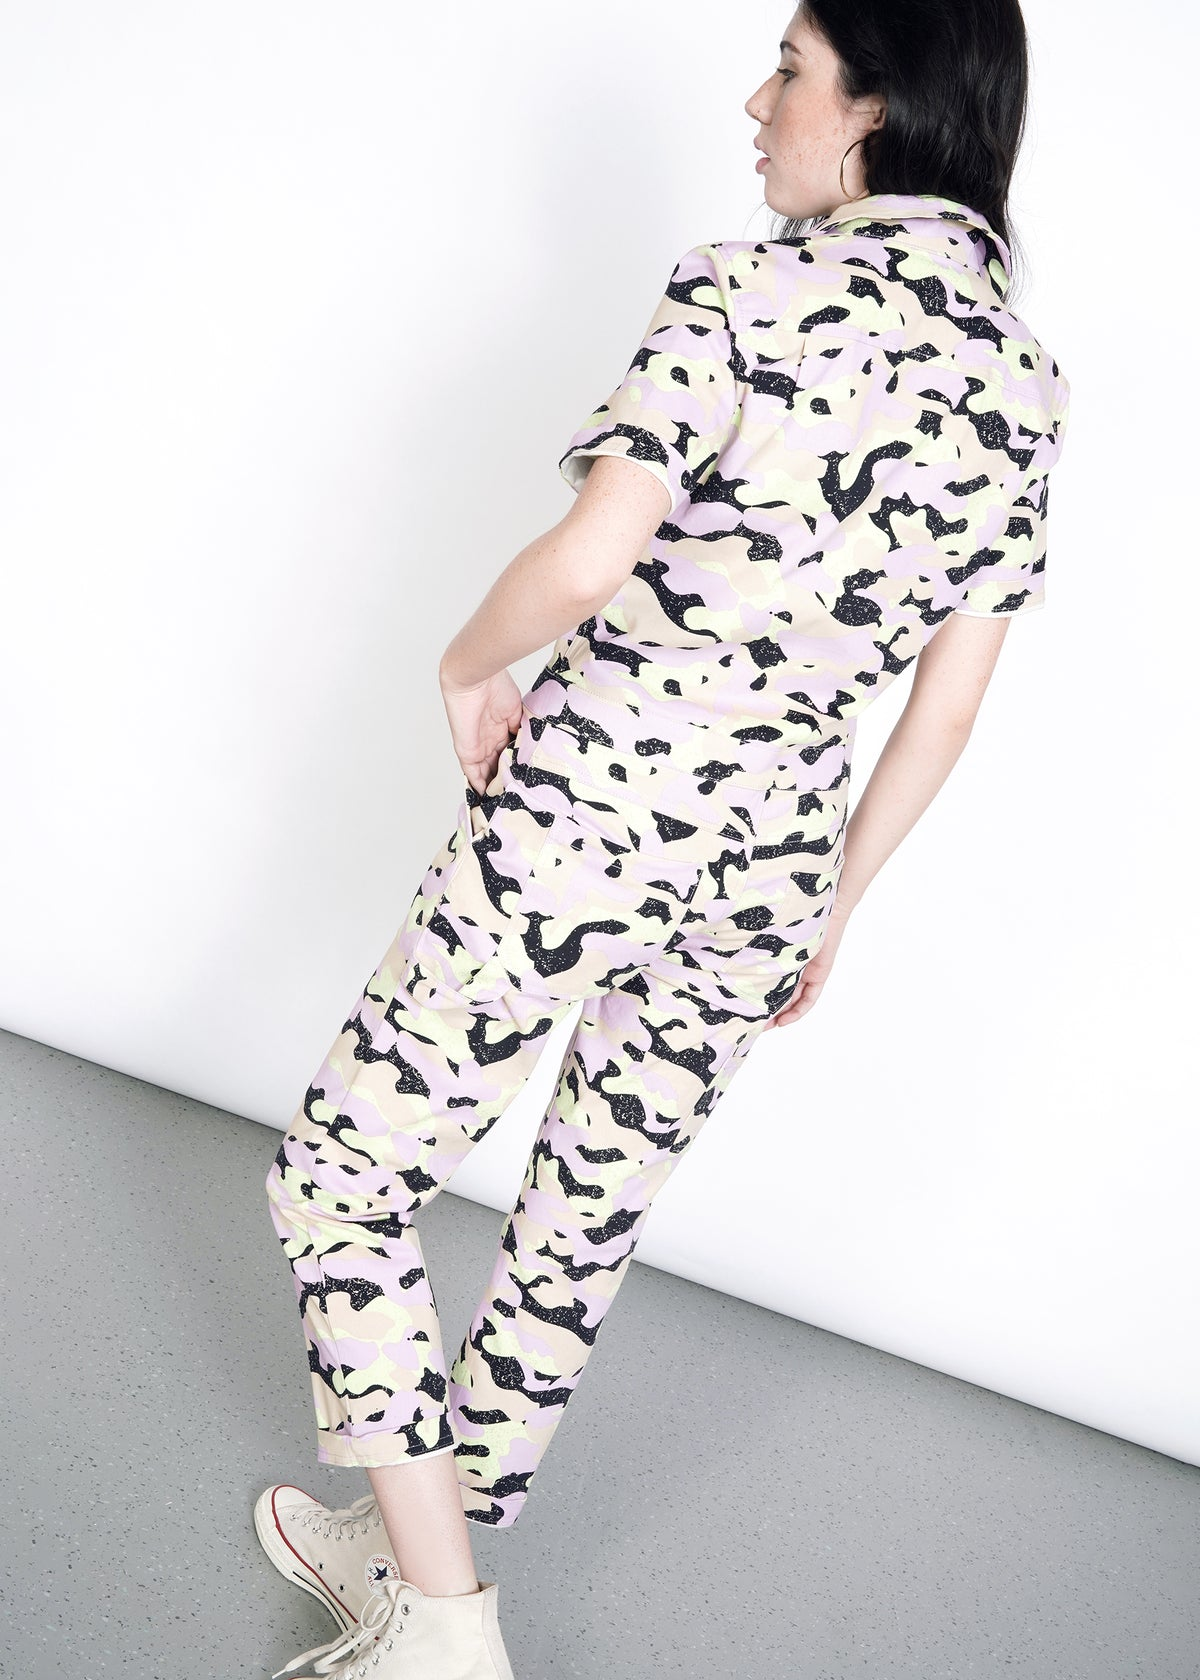 Model facing away, wearing lavender, celadon, black, and tan camouflage all over print short sleeve coverall jumpsuit in size S, pant legs cuffed once and worn with white converse